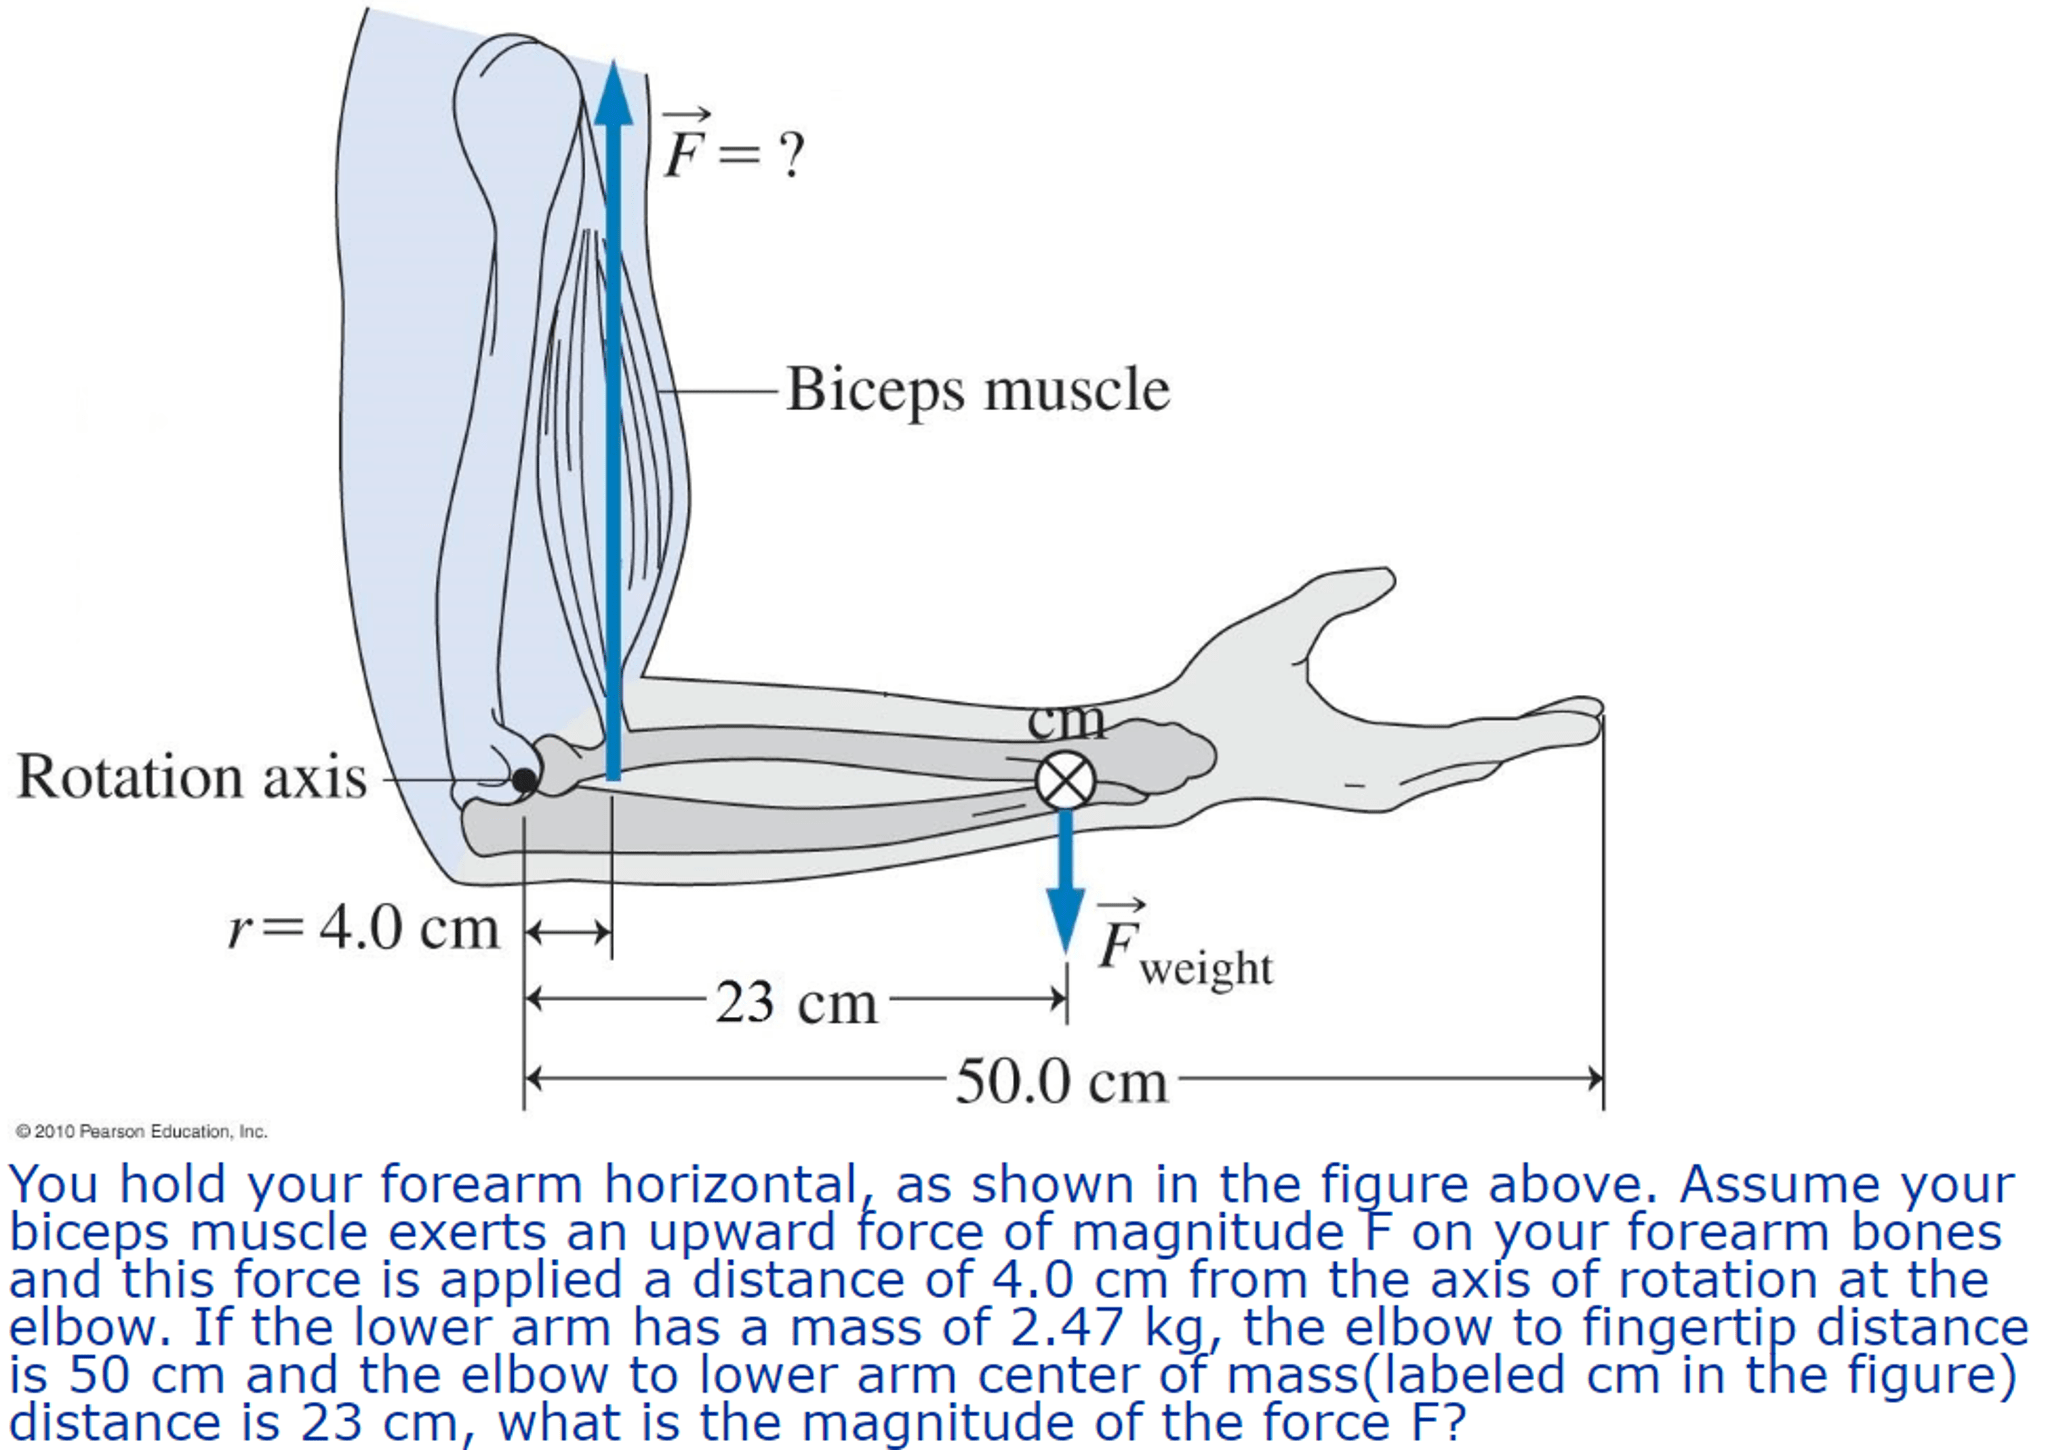 forearm bones diagram single phase motor with 2 capacitor wiring solved you hold your horizontal as shown in the biceps muscle rotation axis r 4 0 cm weight 23 50 2010 pearson education